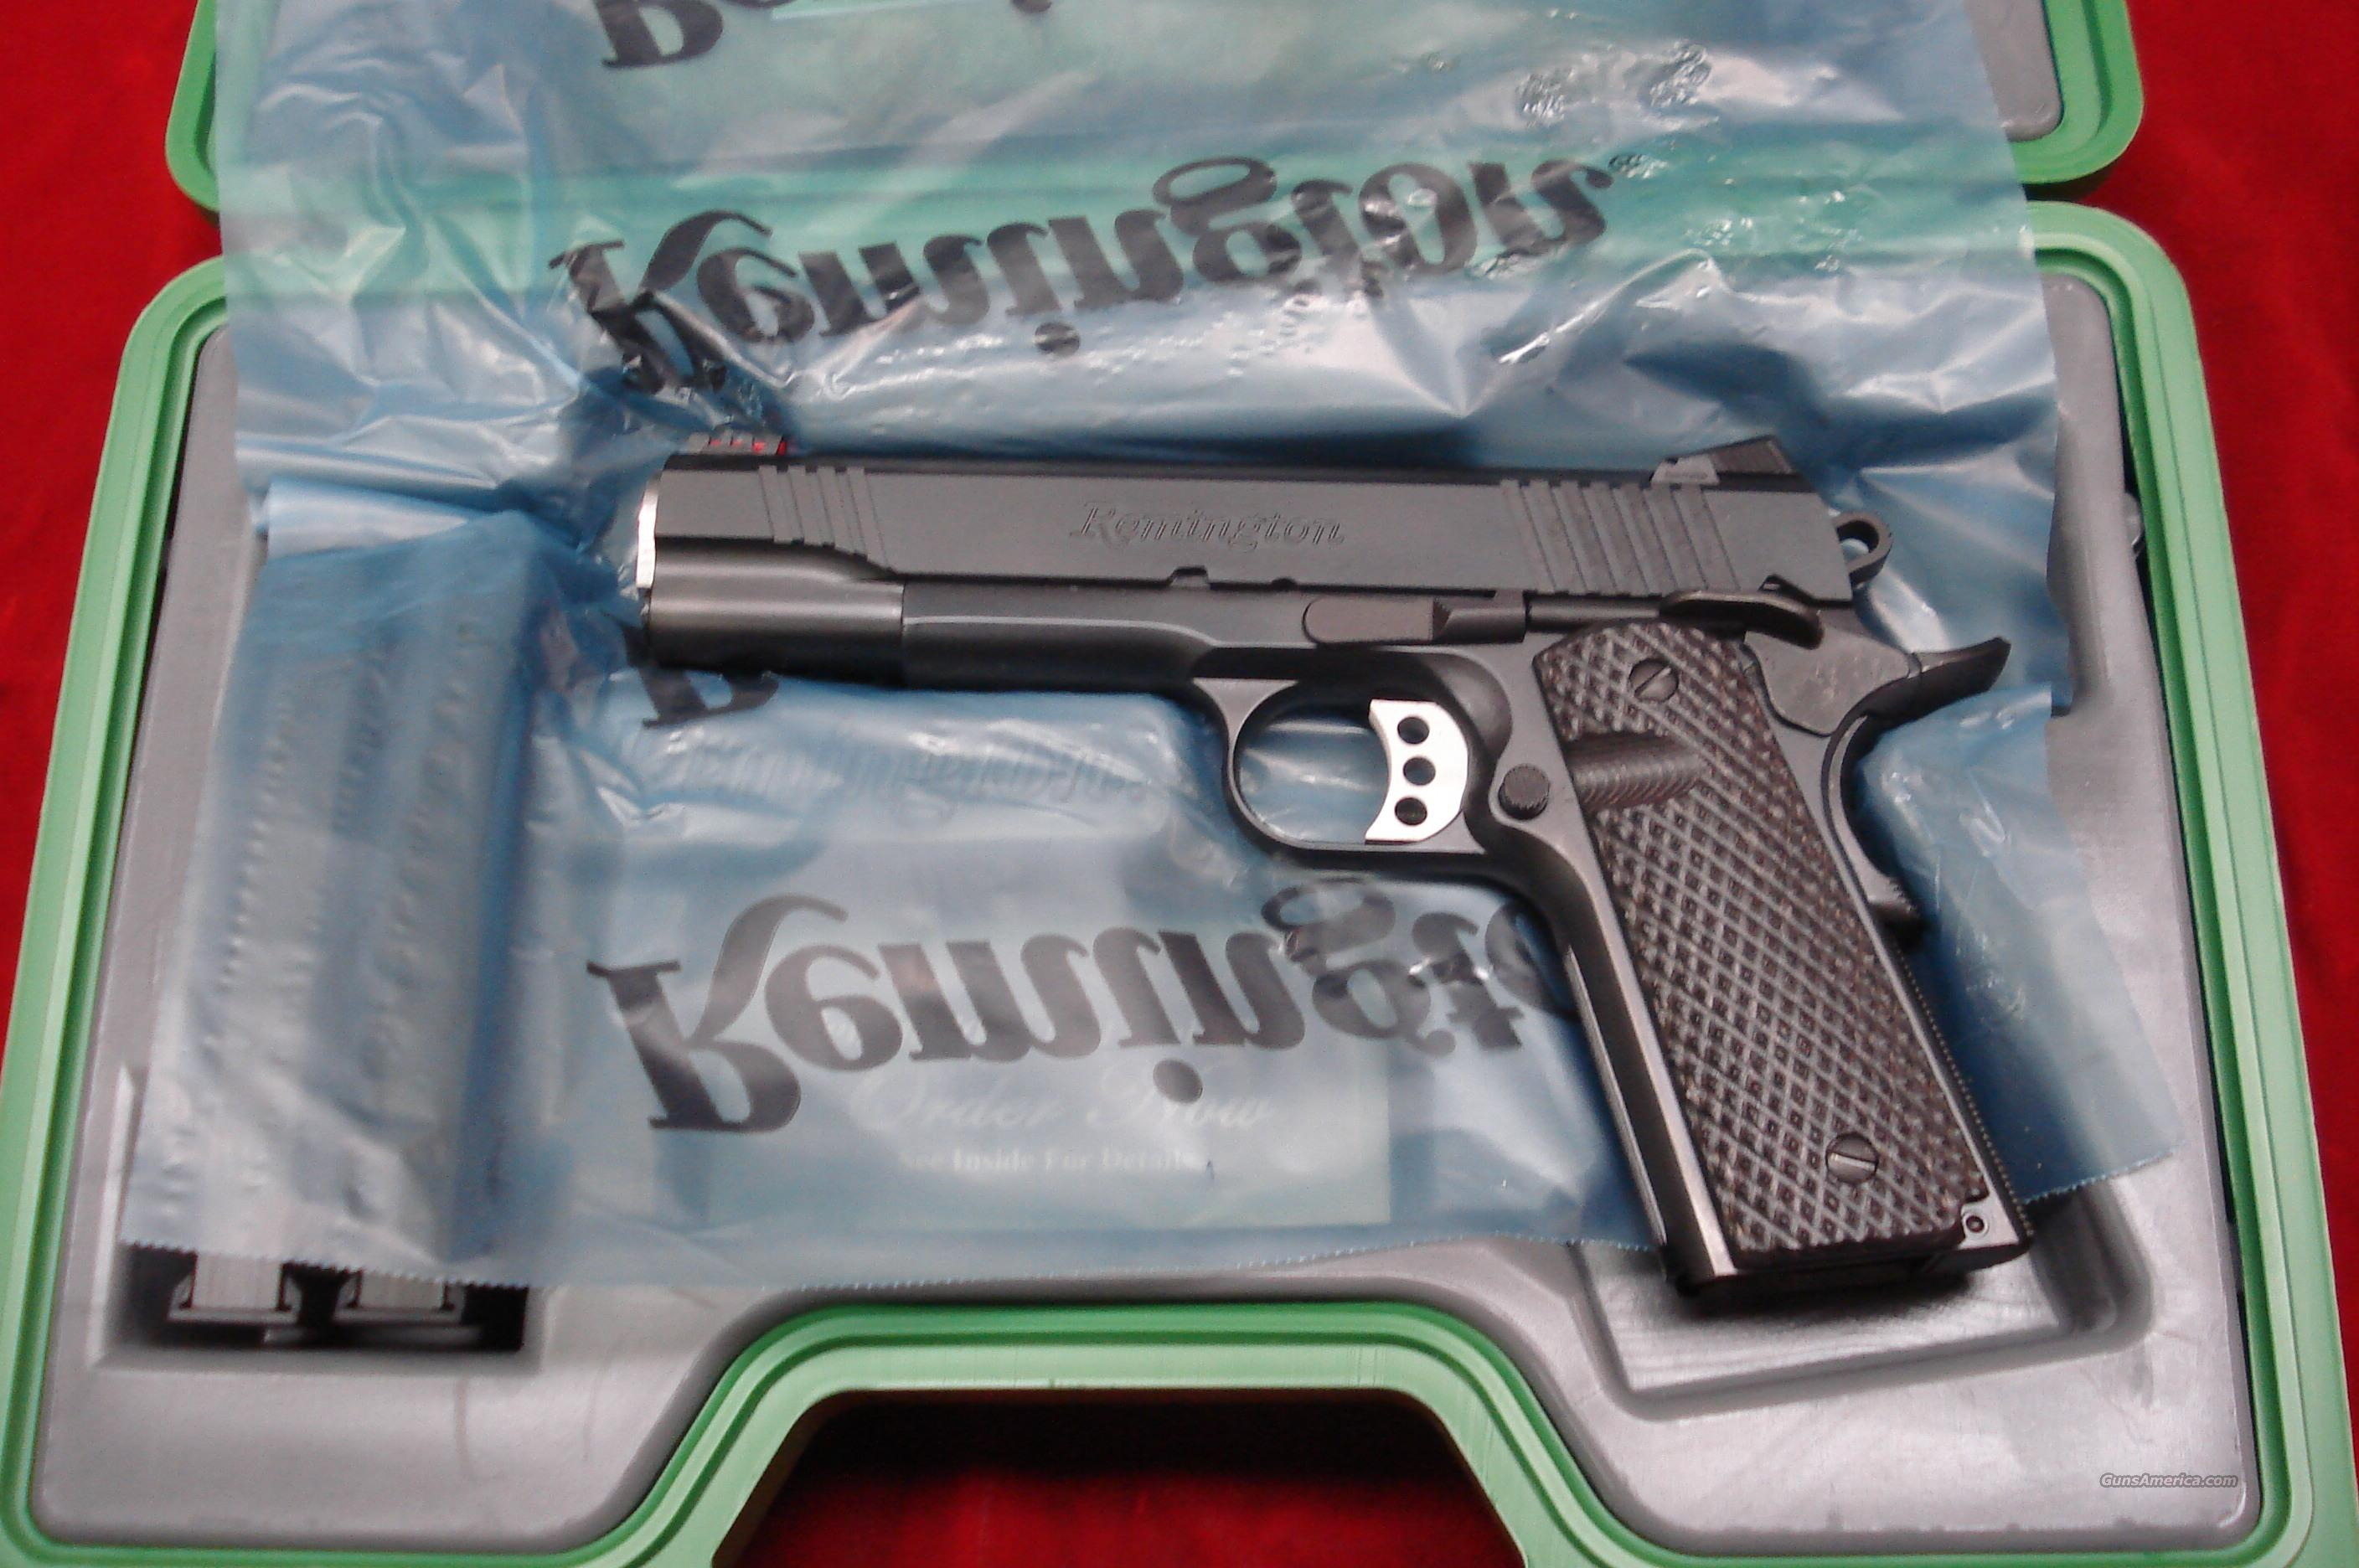 REMINGTON ENHANCED EDITION 1911 R1 45ACP NEW {{ IN STOCK READY TO SHIP }}  Guns > Pistols > Remington Pistols - Modern